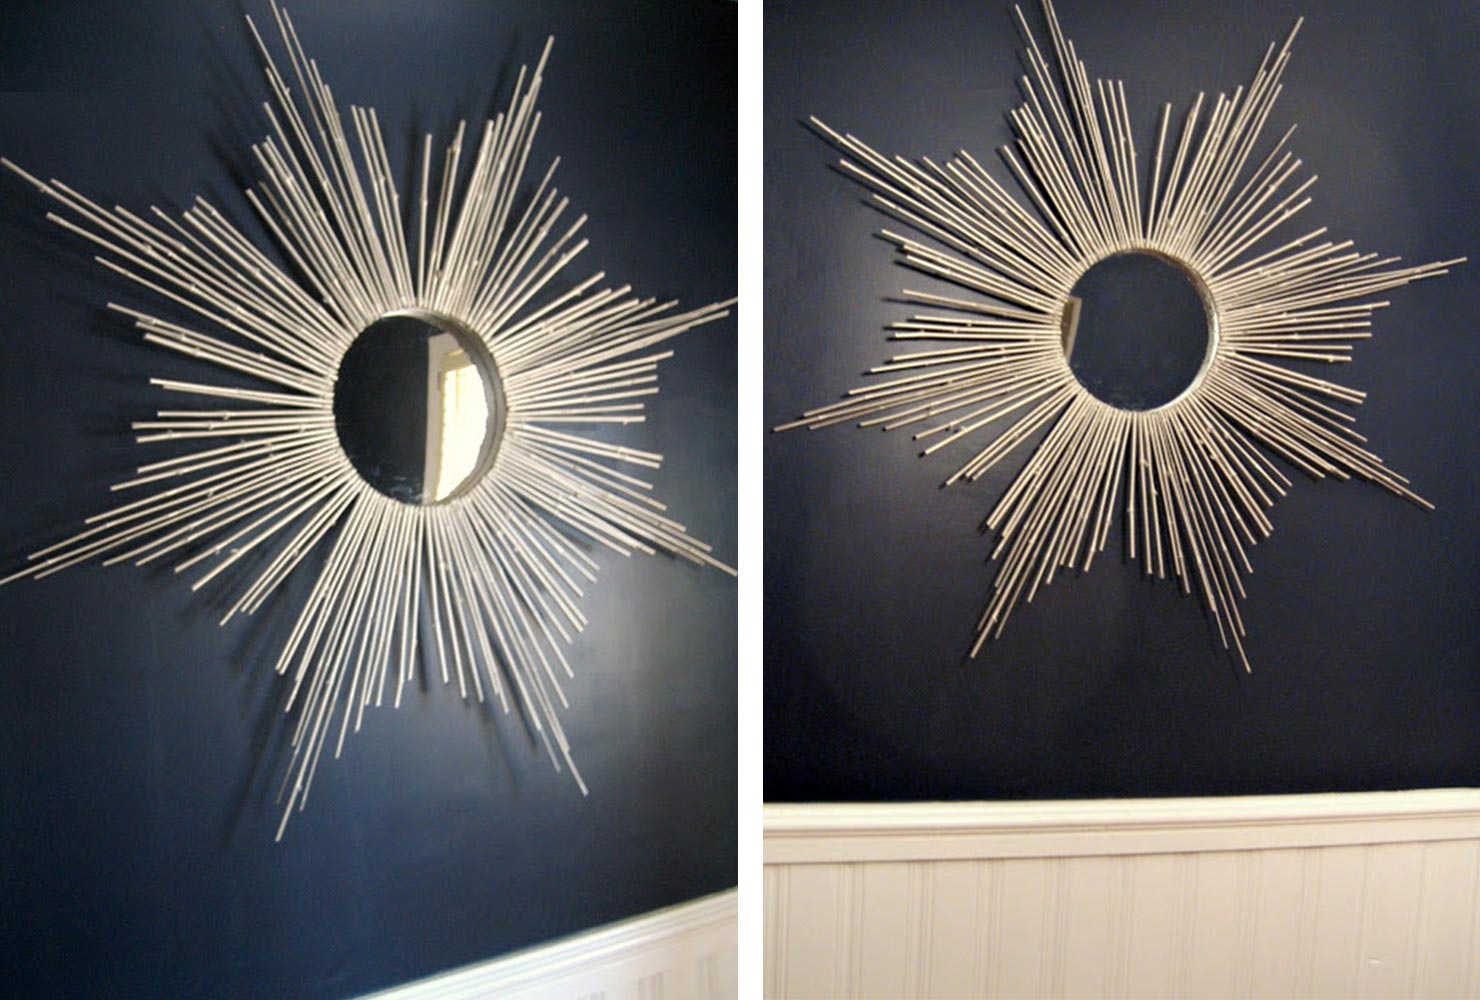 25 Unique Diy Wall Art Ideas (With Printables) | Shutterfly with regard to Belle Circular Scroll Wall Decor (Image 1 of 30)